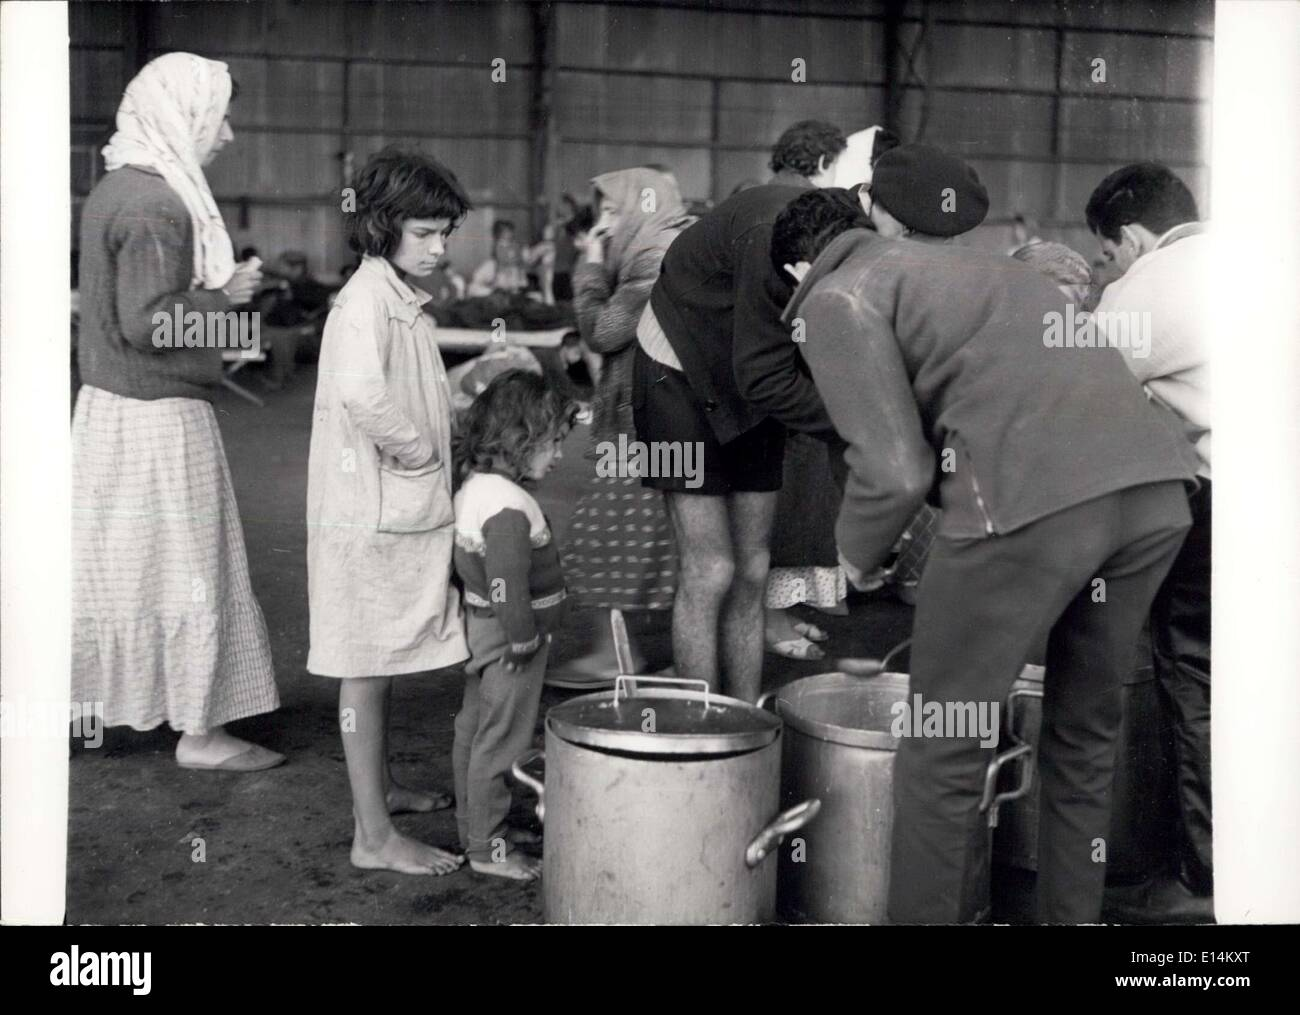 Apr. 05, 2012 - 3 FOOD BEING DISTRIBUTED TO SURVIVORS IN ONE OF THE HANGARS OF THE FRENCH AIR BASE. - Stock Image